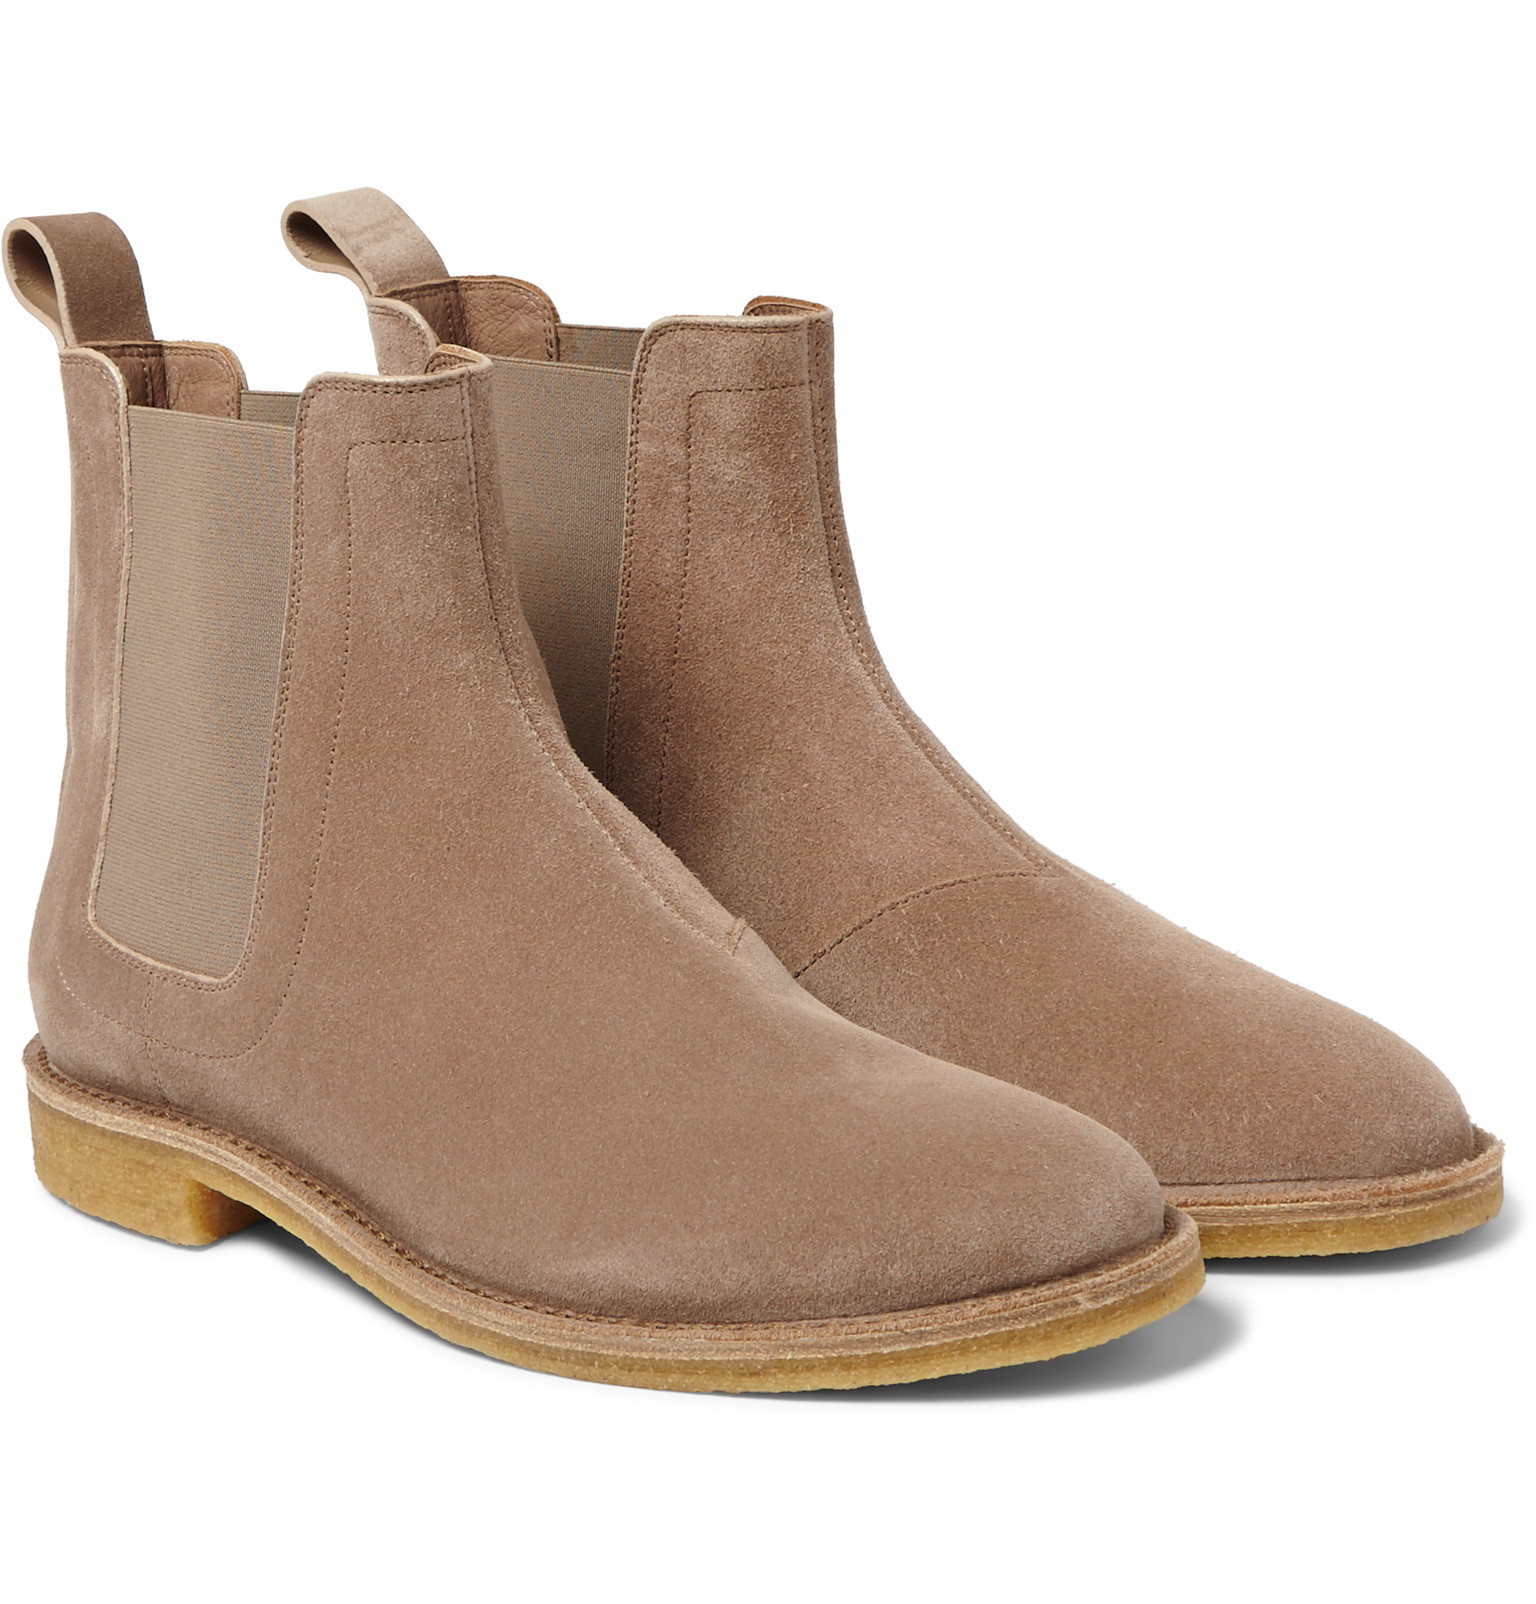 Amazing  S Typical Brightly Coloured Accents Come In The Form Of Yellow Inserts On A Pair Of Classic Navy Suede Chelsea Boots 3 Bottega Veneta Chelsea Boot $770 These Shadow Grey, Buffalo Leather Chelsea Boots Feature A Topline Pull Tab And